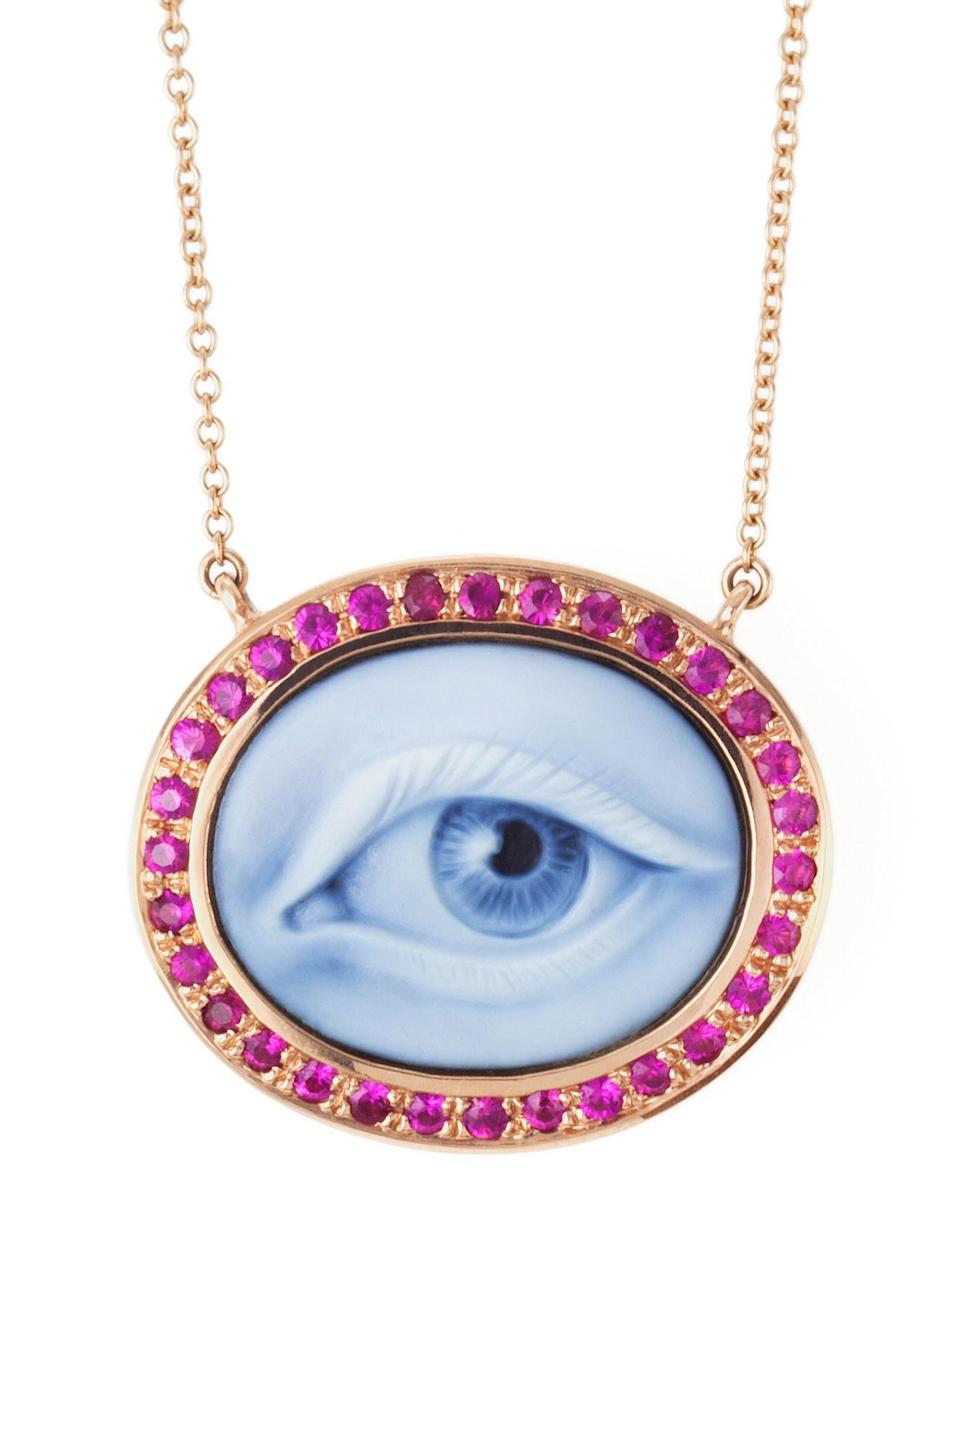 5 Dazzling New Jewelry Designers From the Las Vegas ...